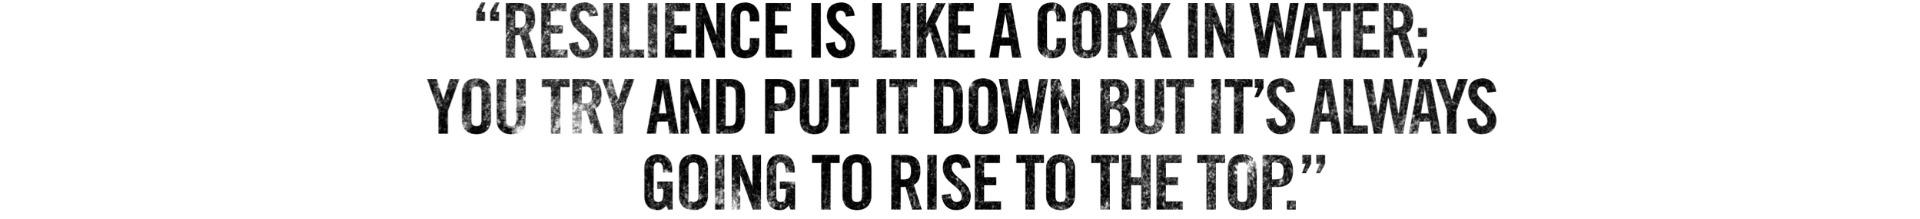 Resilience is like a cork in water; you try and put it down but it's always going to rise to the top.